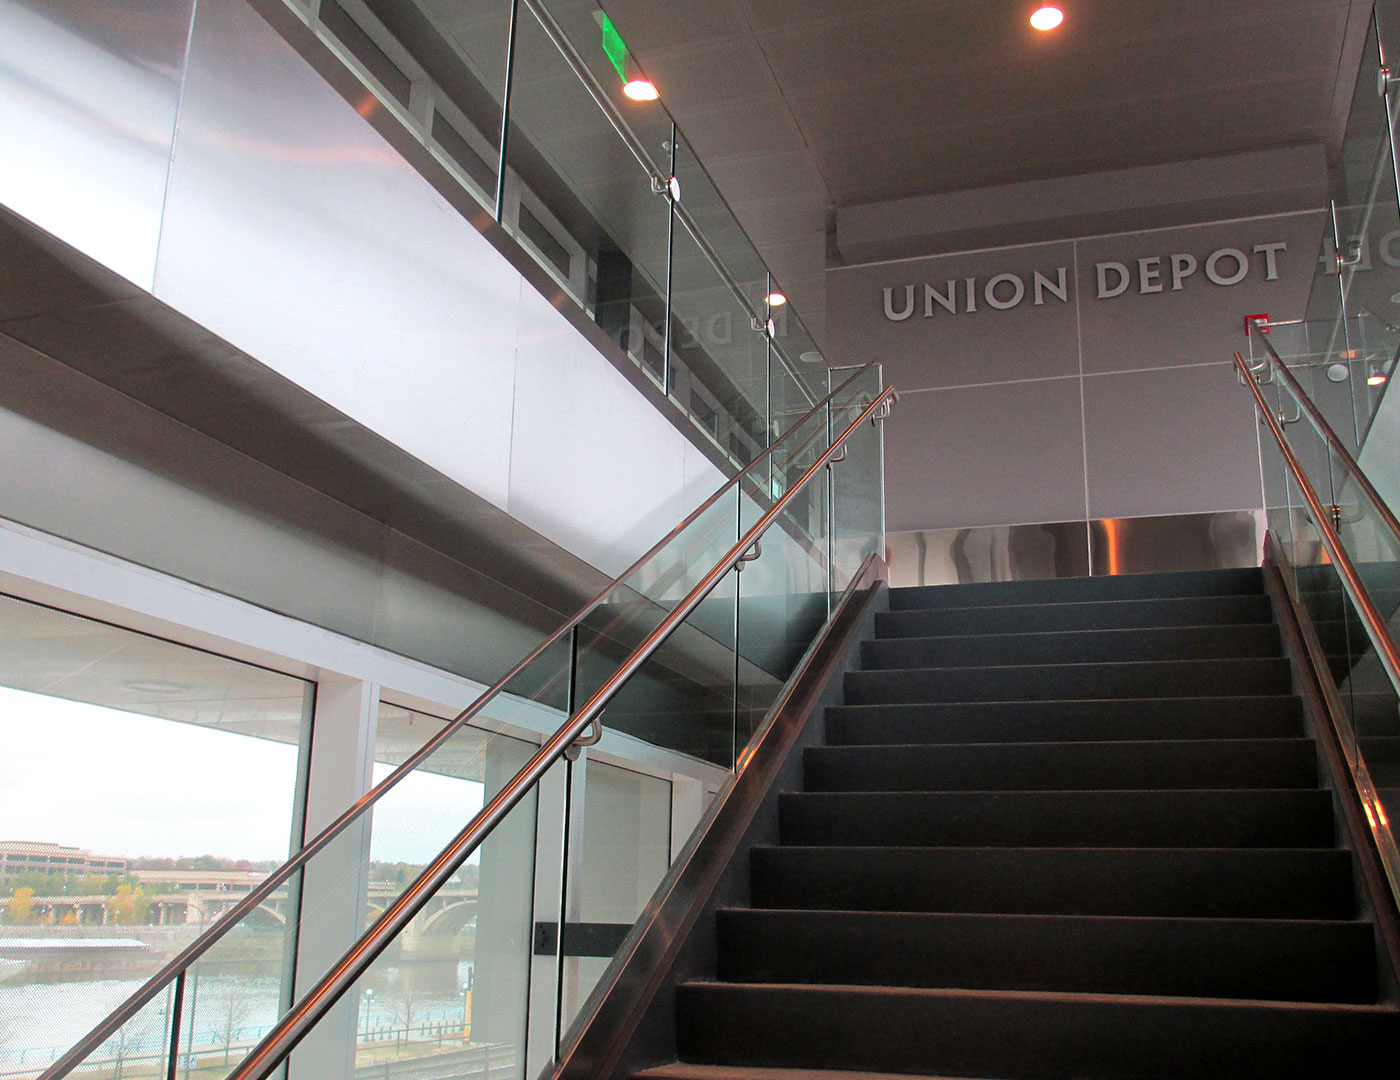 Transportation glass railing on stairs and balcony